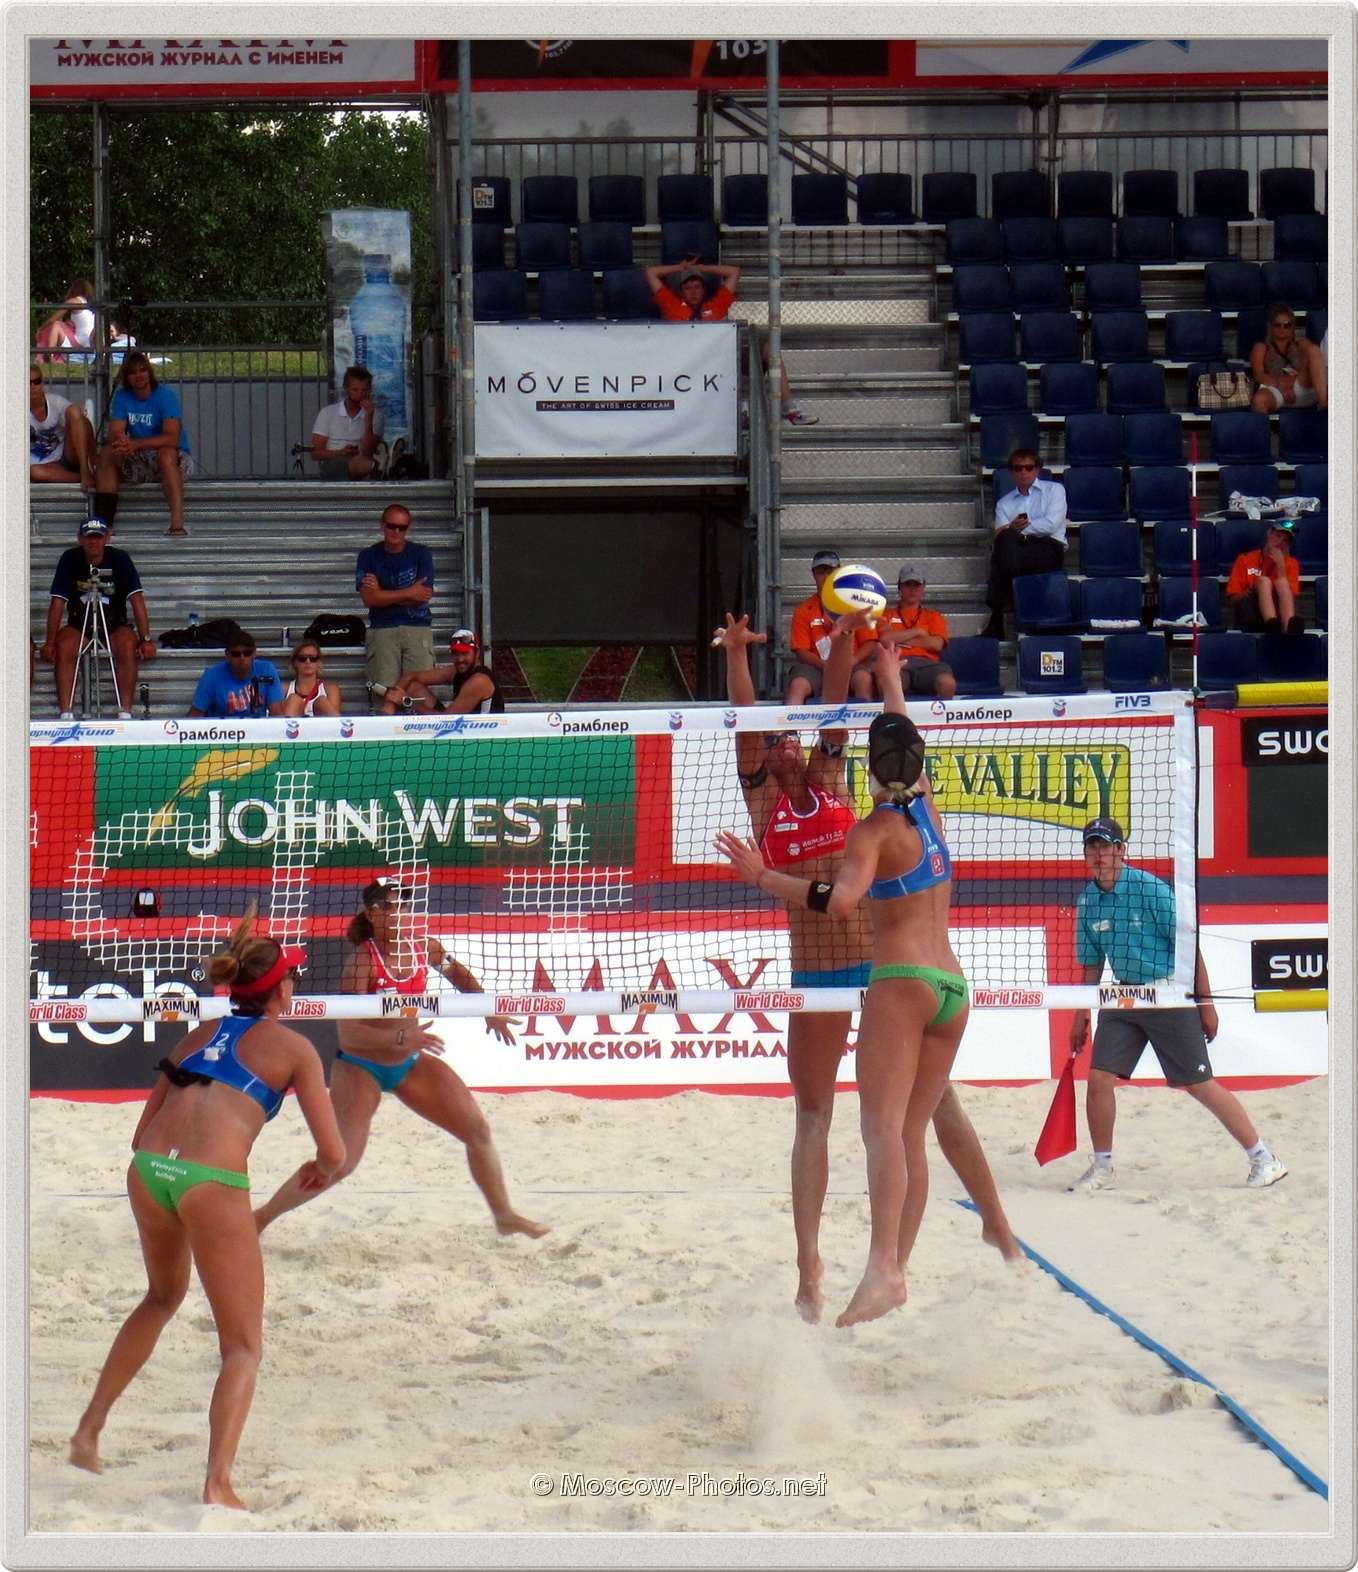 Fake Spike of Brittany Hochevar (USA)